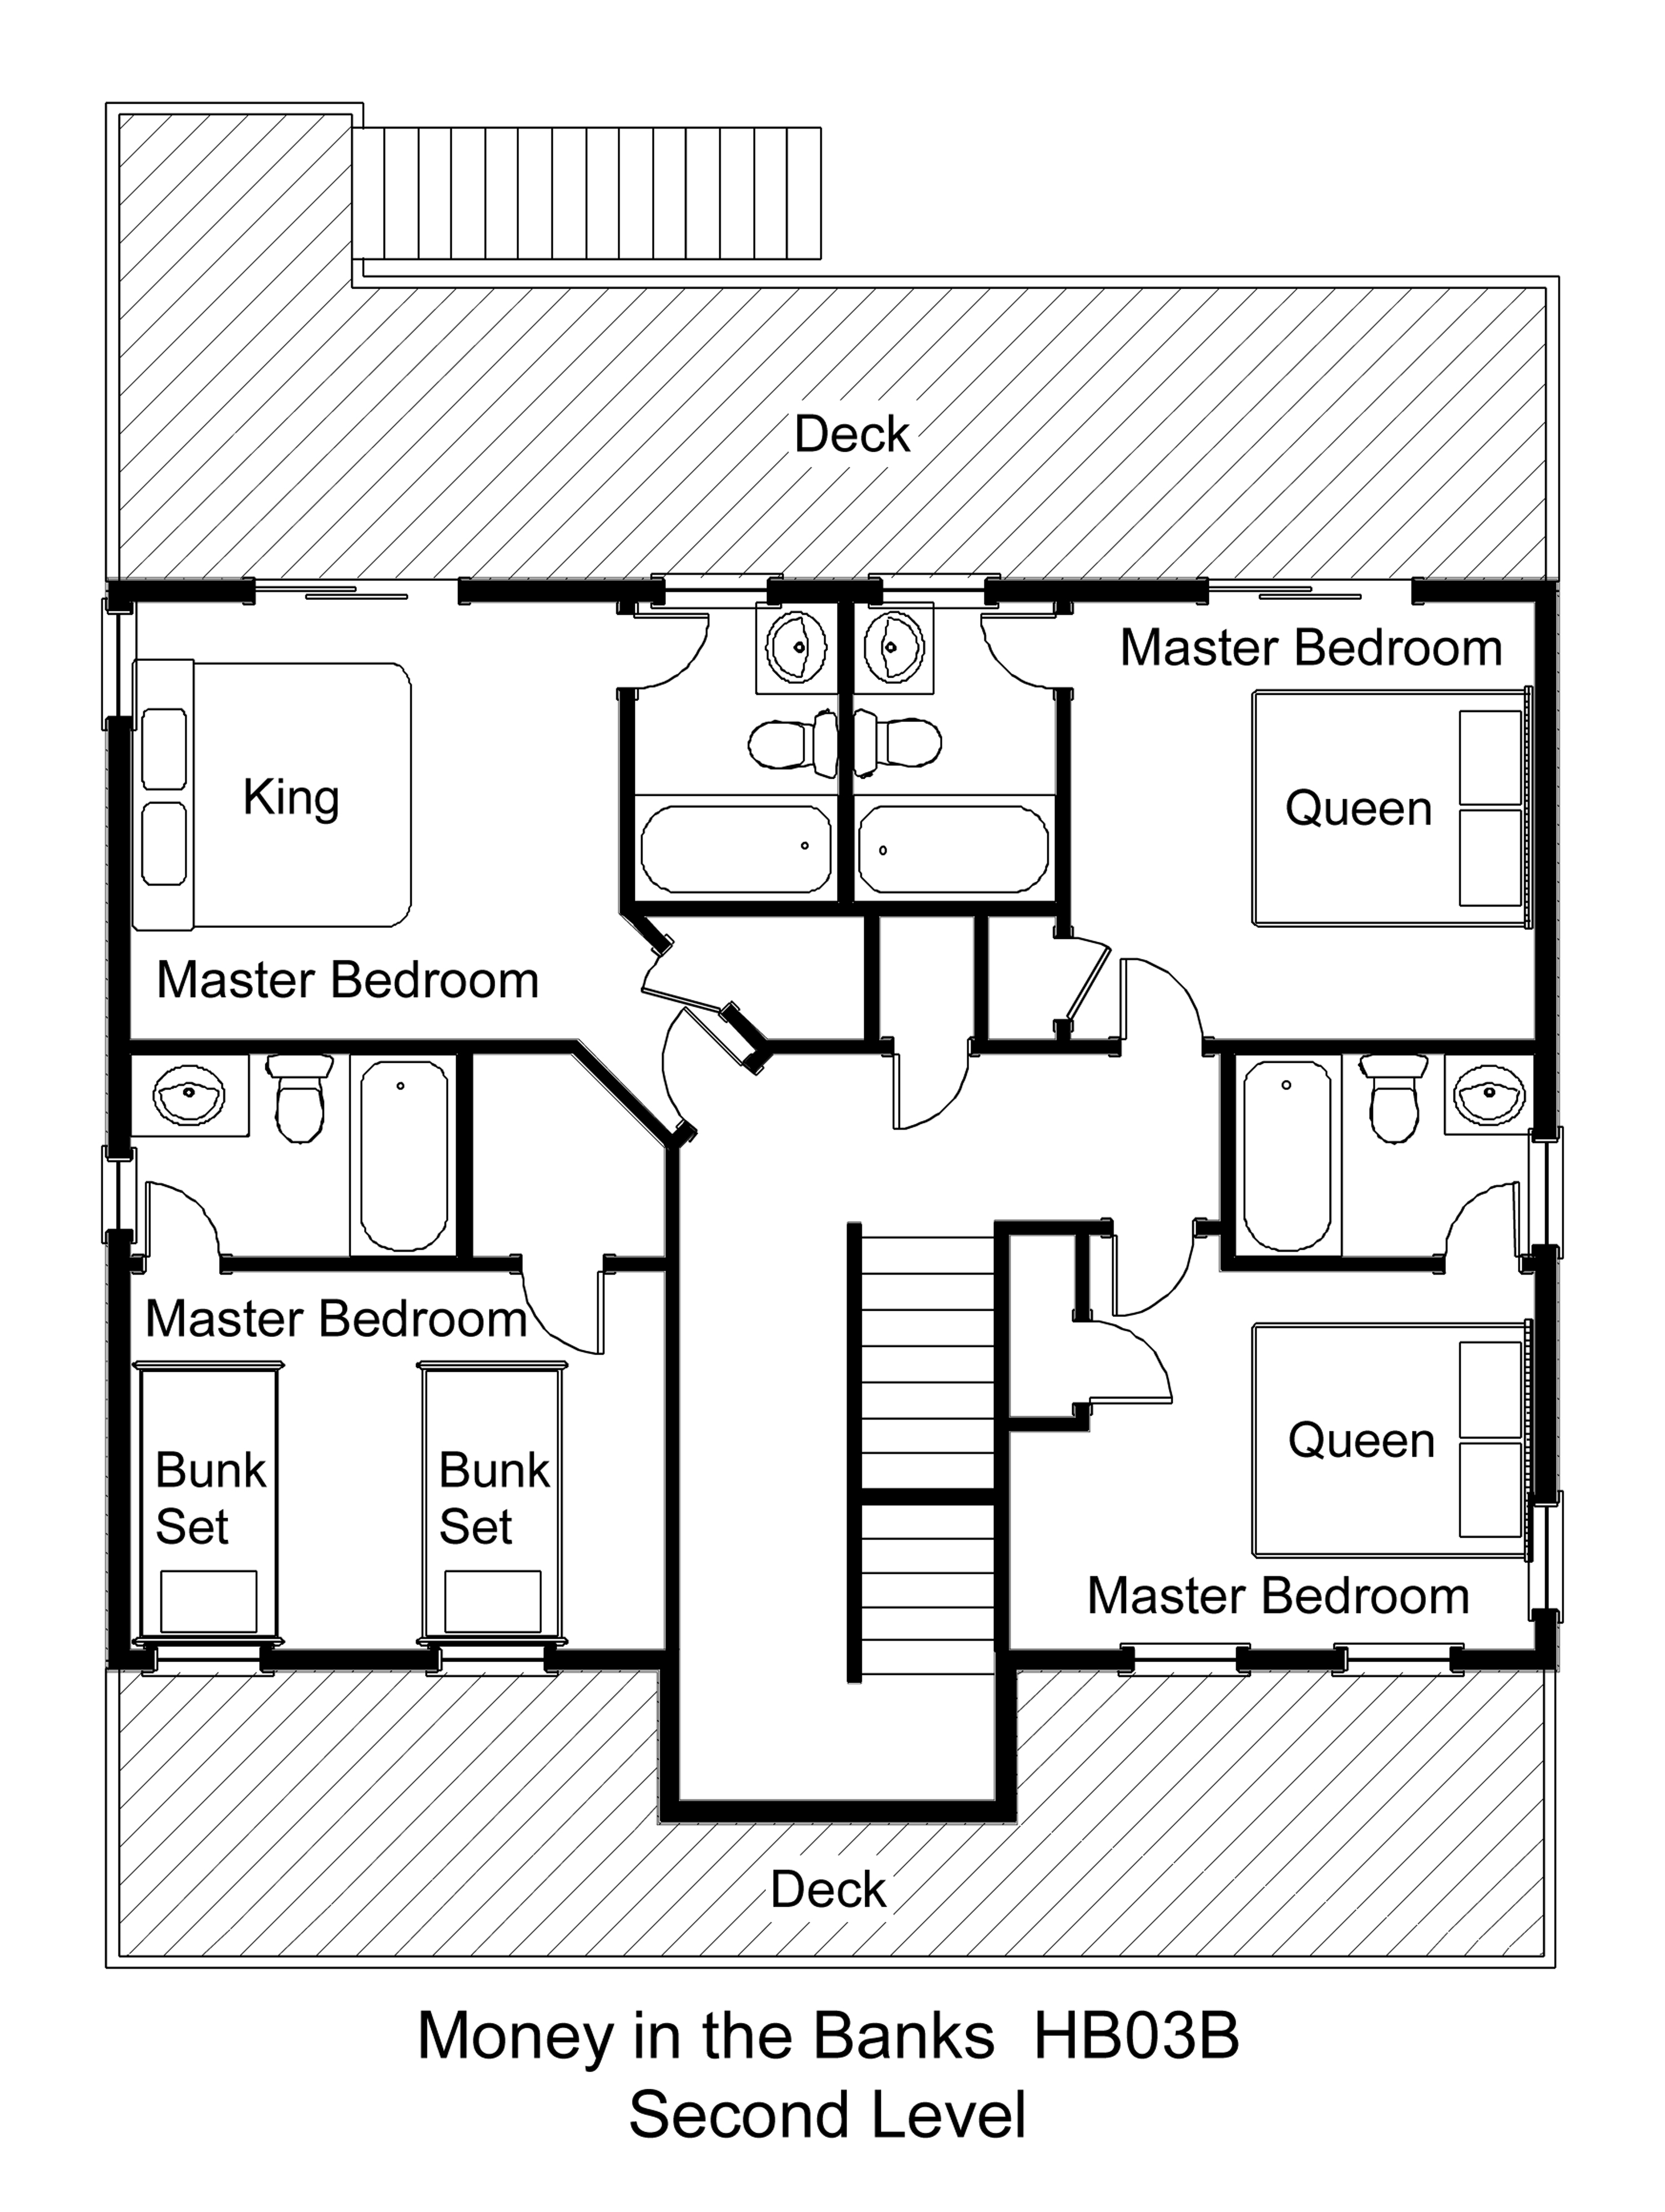 Hb03b money in the banks floor plans level 2 jpg